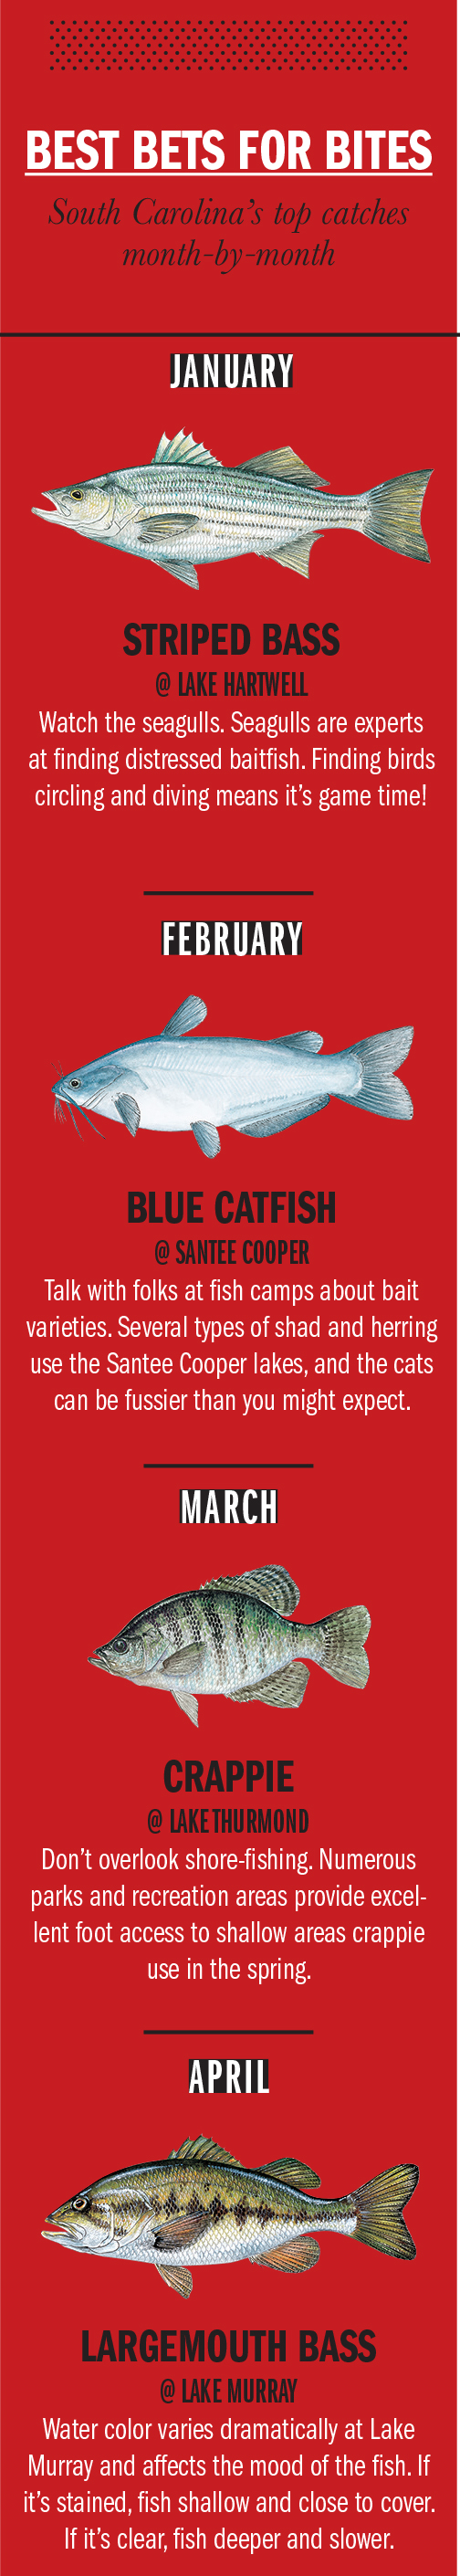 2018 South Carolina Fishing Calendar